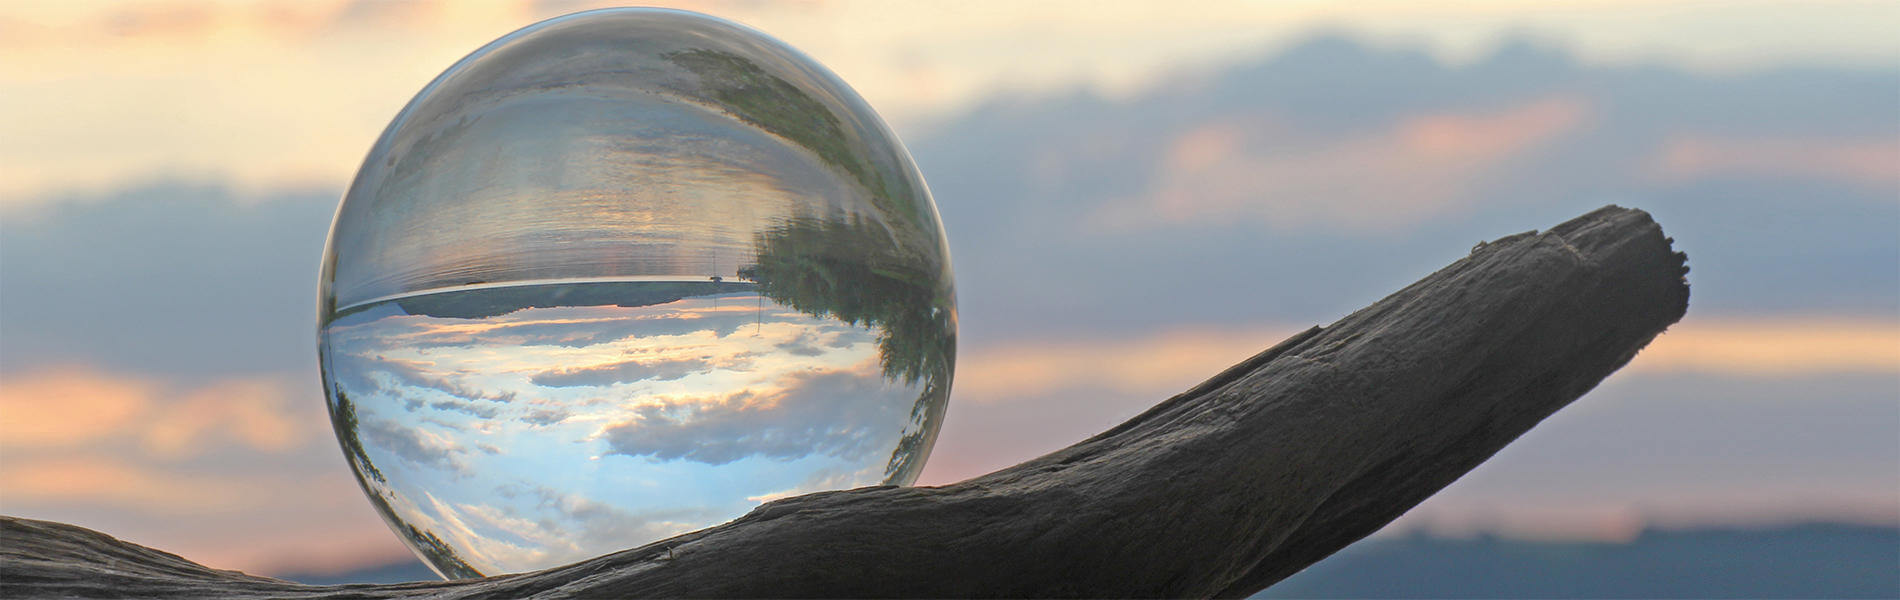 Predictive analytics: crystal ball or reliable planning tool?